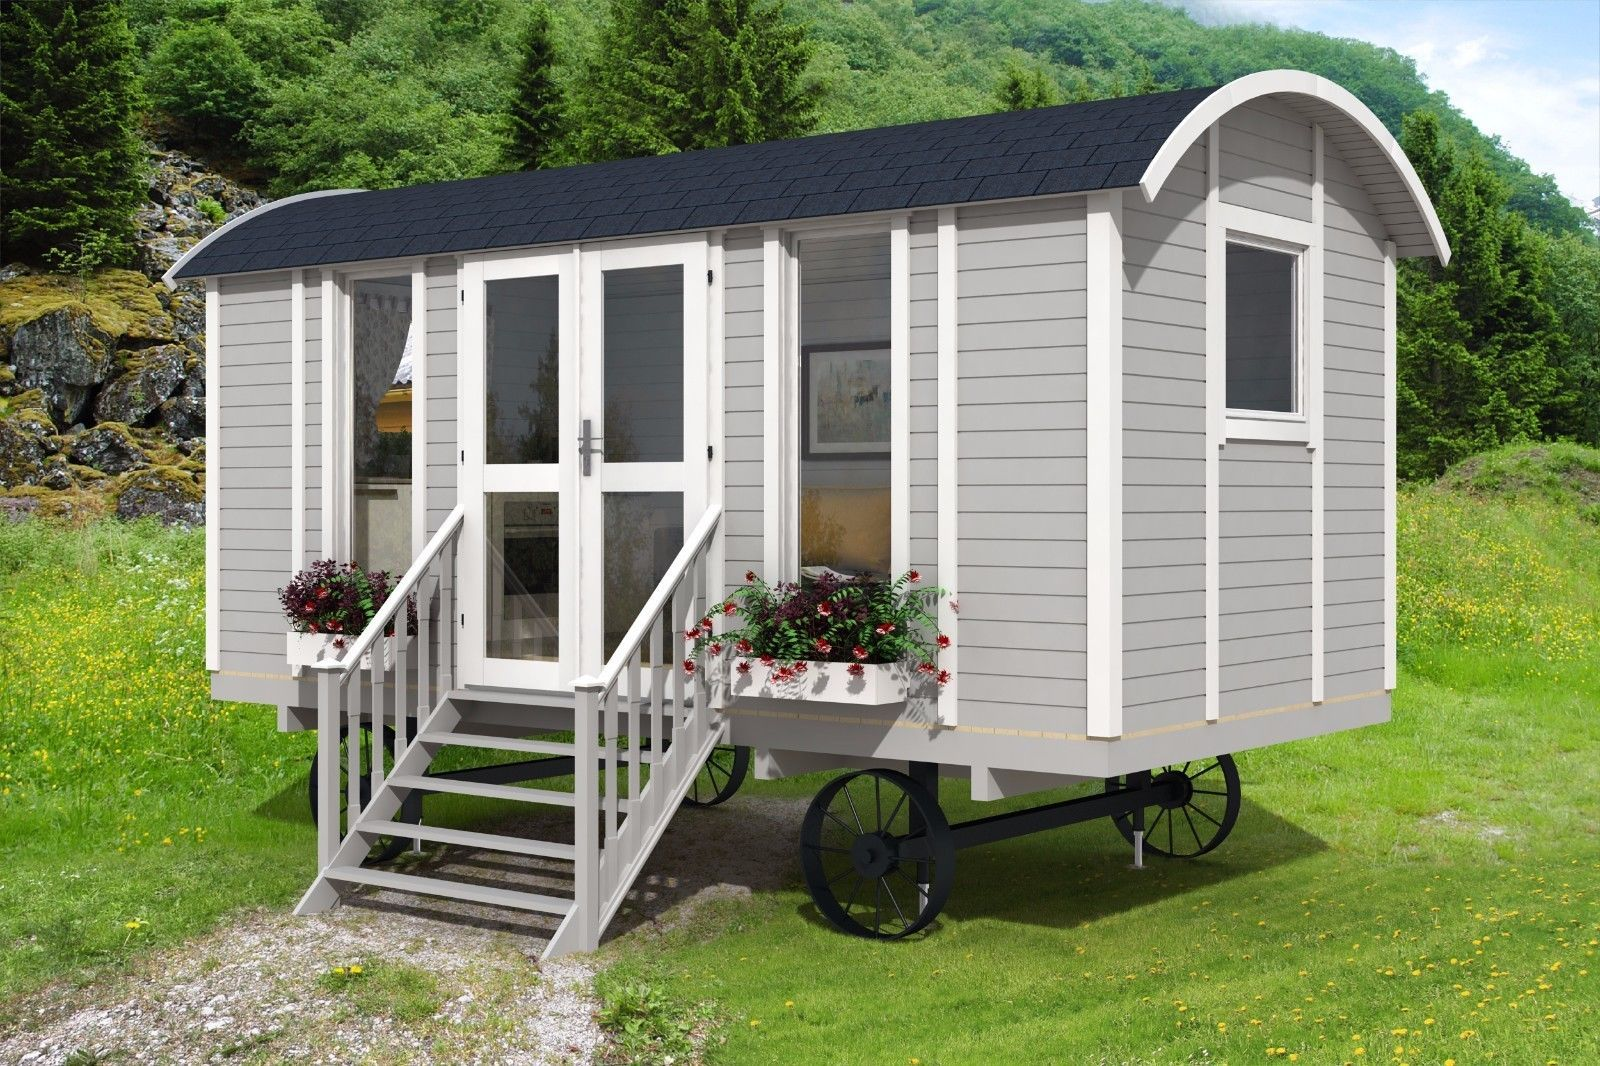 shepherds hut 4.8m in garden setting traditional gypsy wago